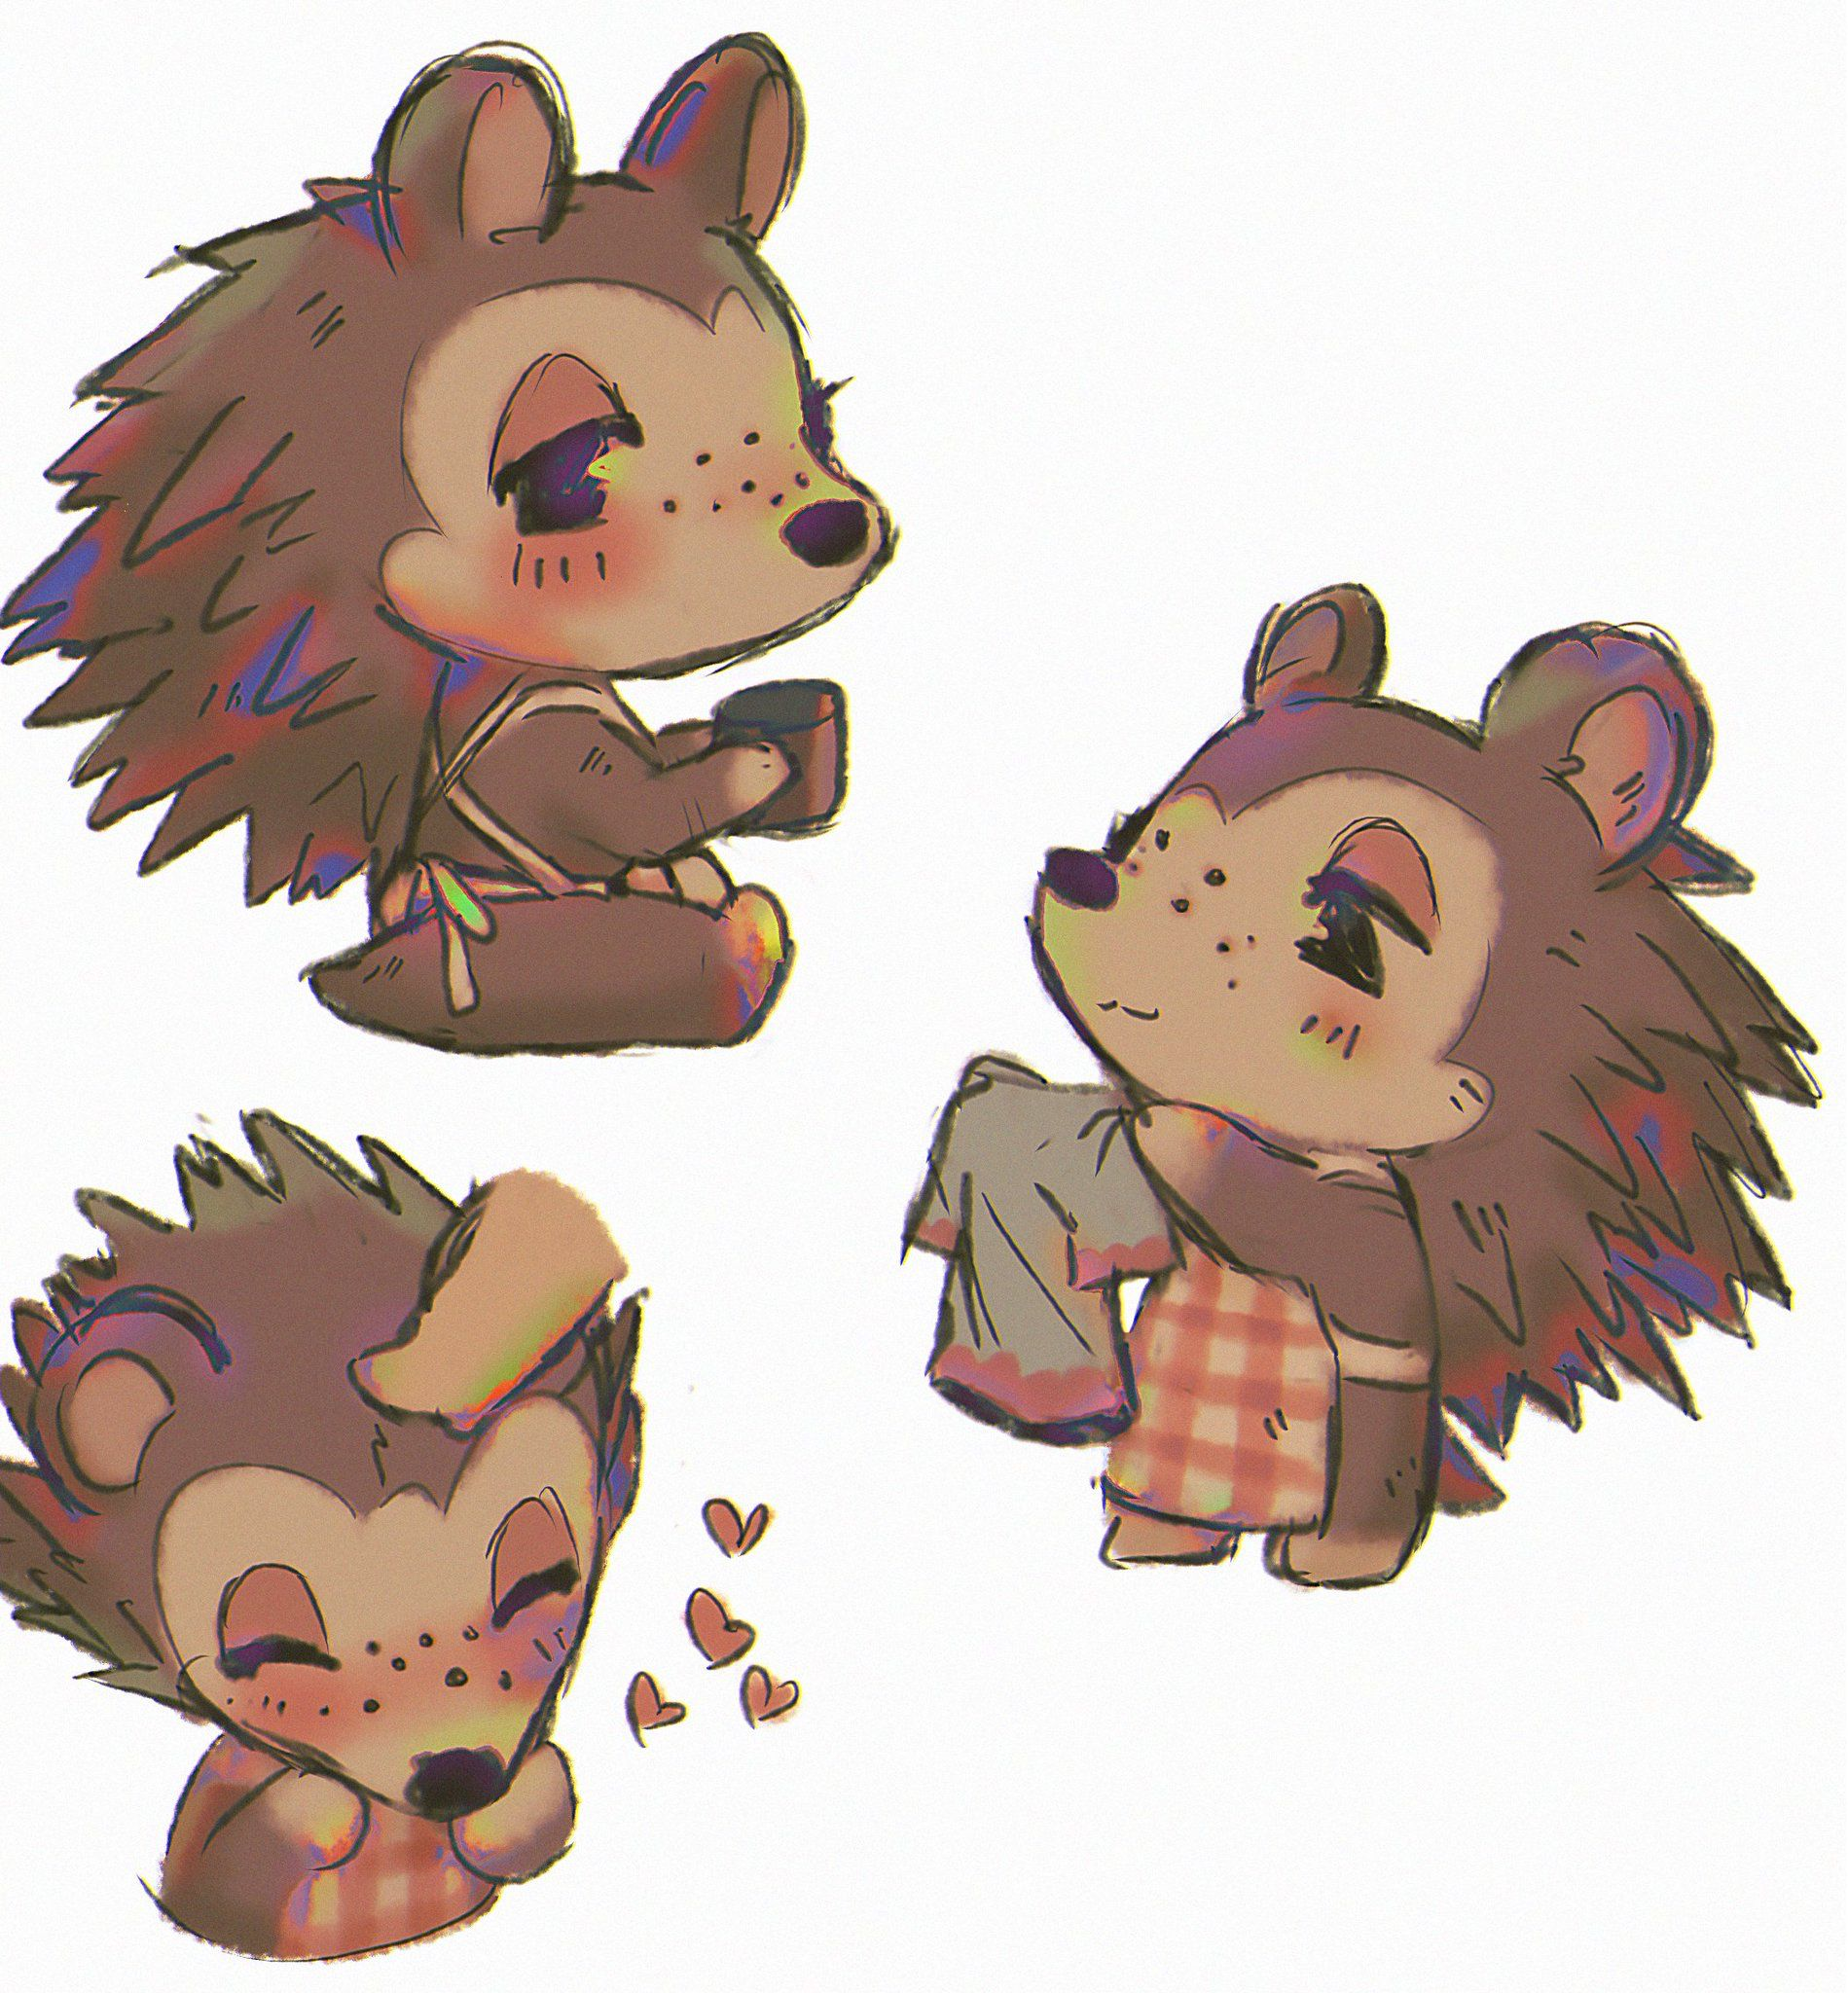 19+ Wolf villagers animal crossing ideas in 2021